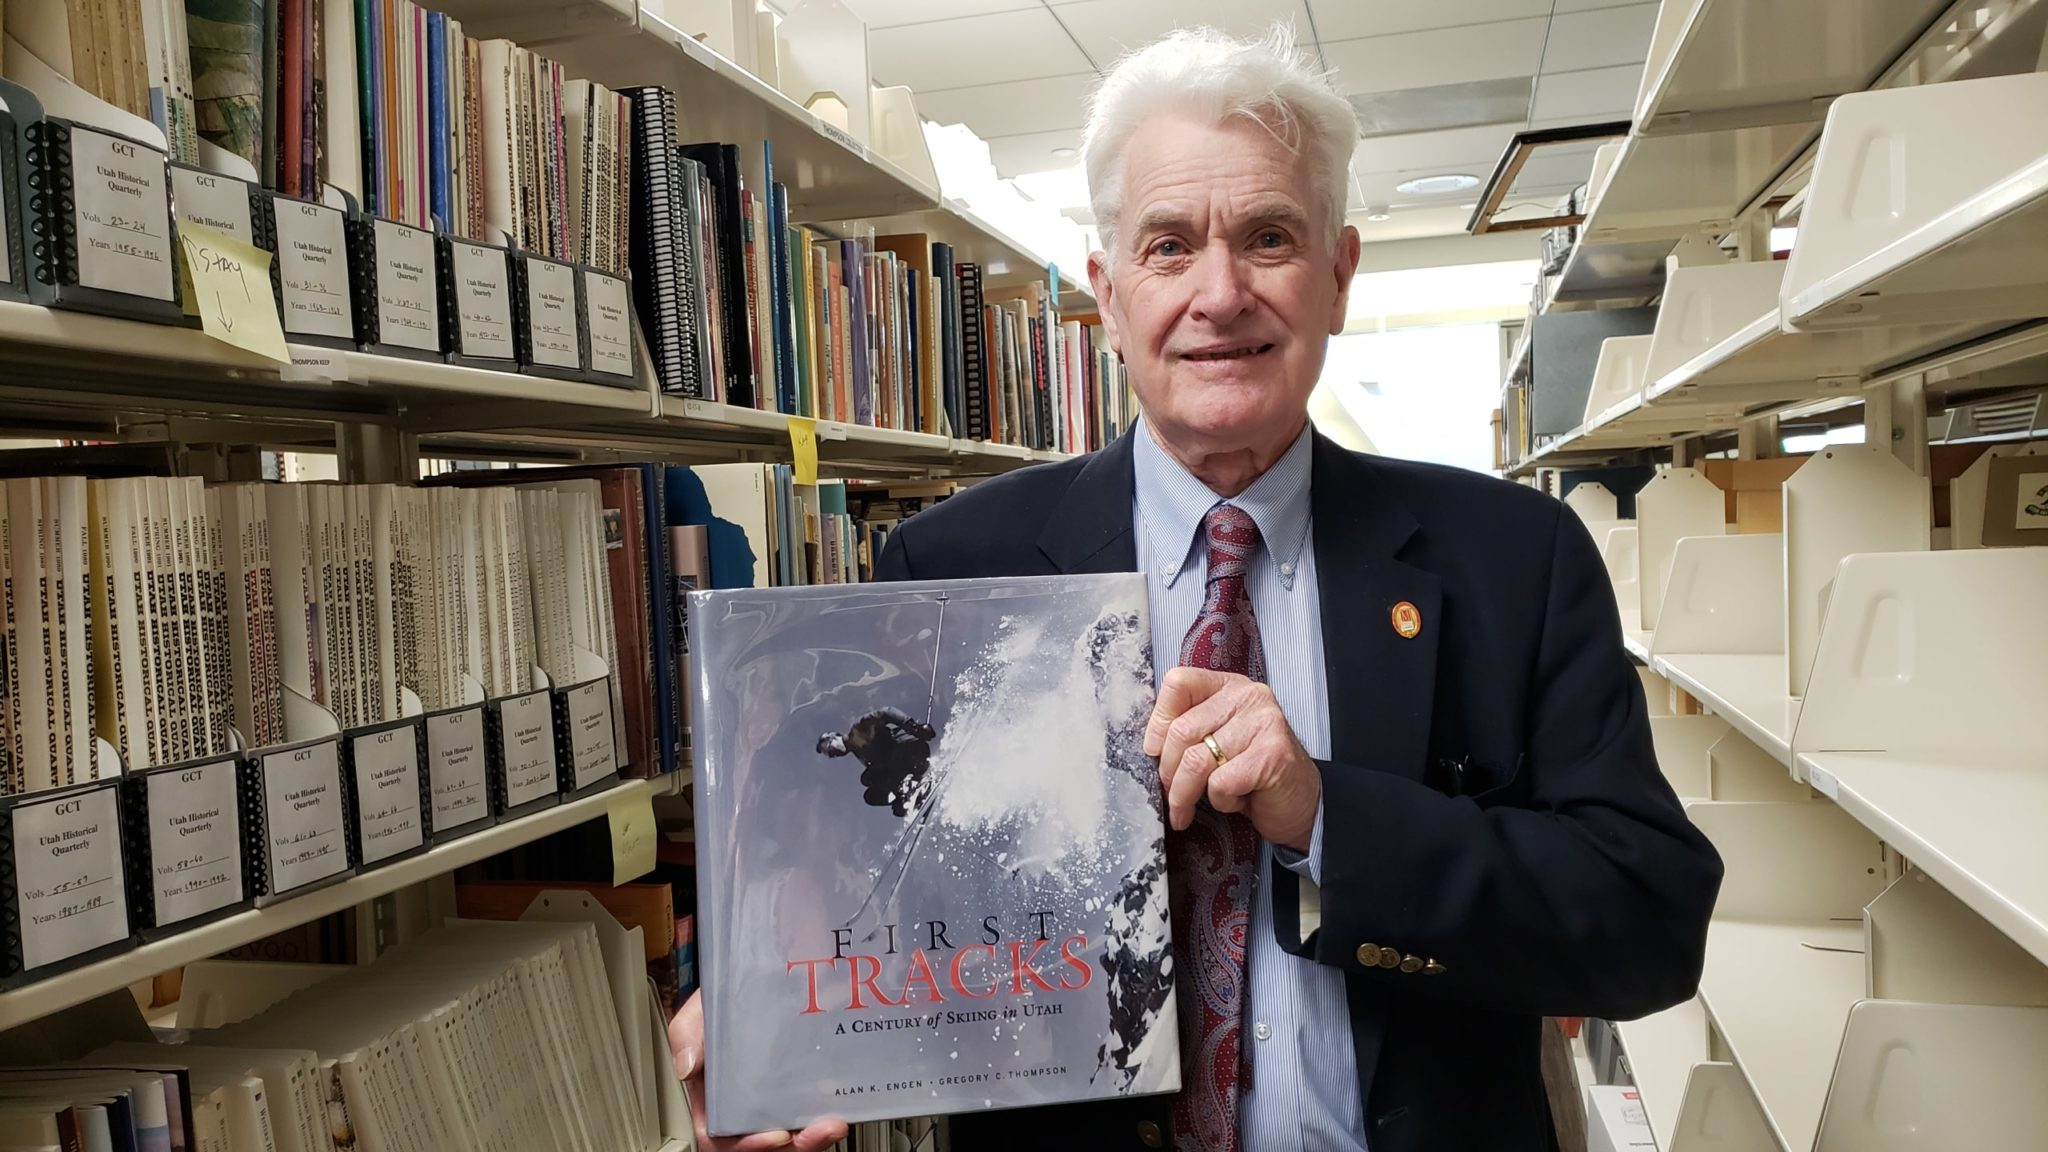 With Alan K. Engen, Greg co-authored the book First Tracks: A Century of Skiing (2001), which focuses on the history of skiing in Utah.